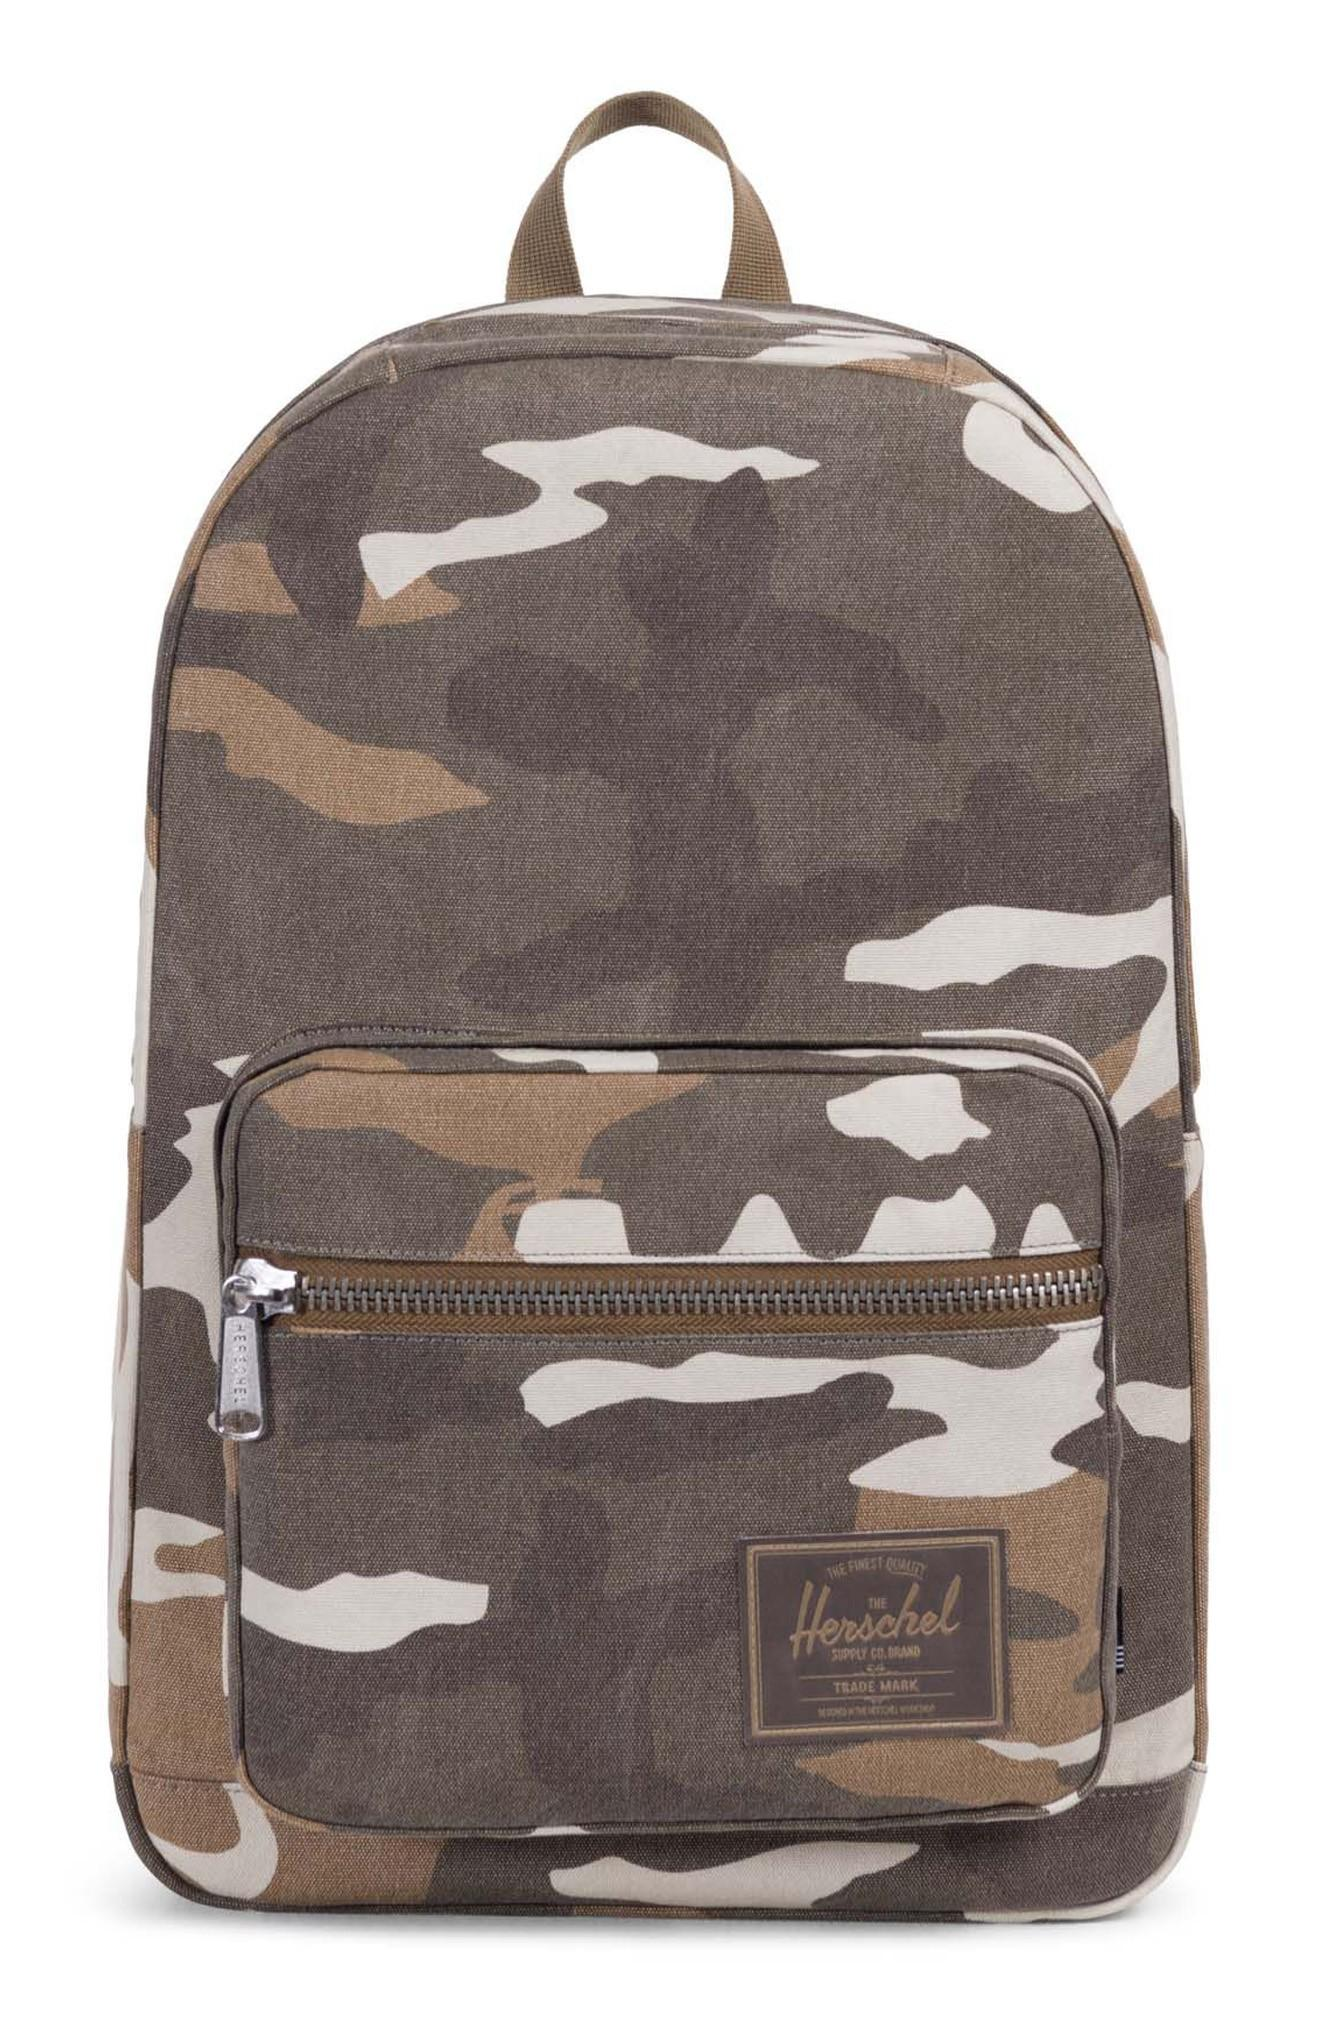 5c3e41b3f10 Herschel Supply Co. Pop Quiz Print Canvas Backpack - Brown In Cub Camo